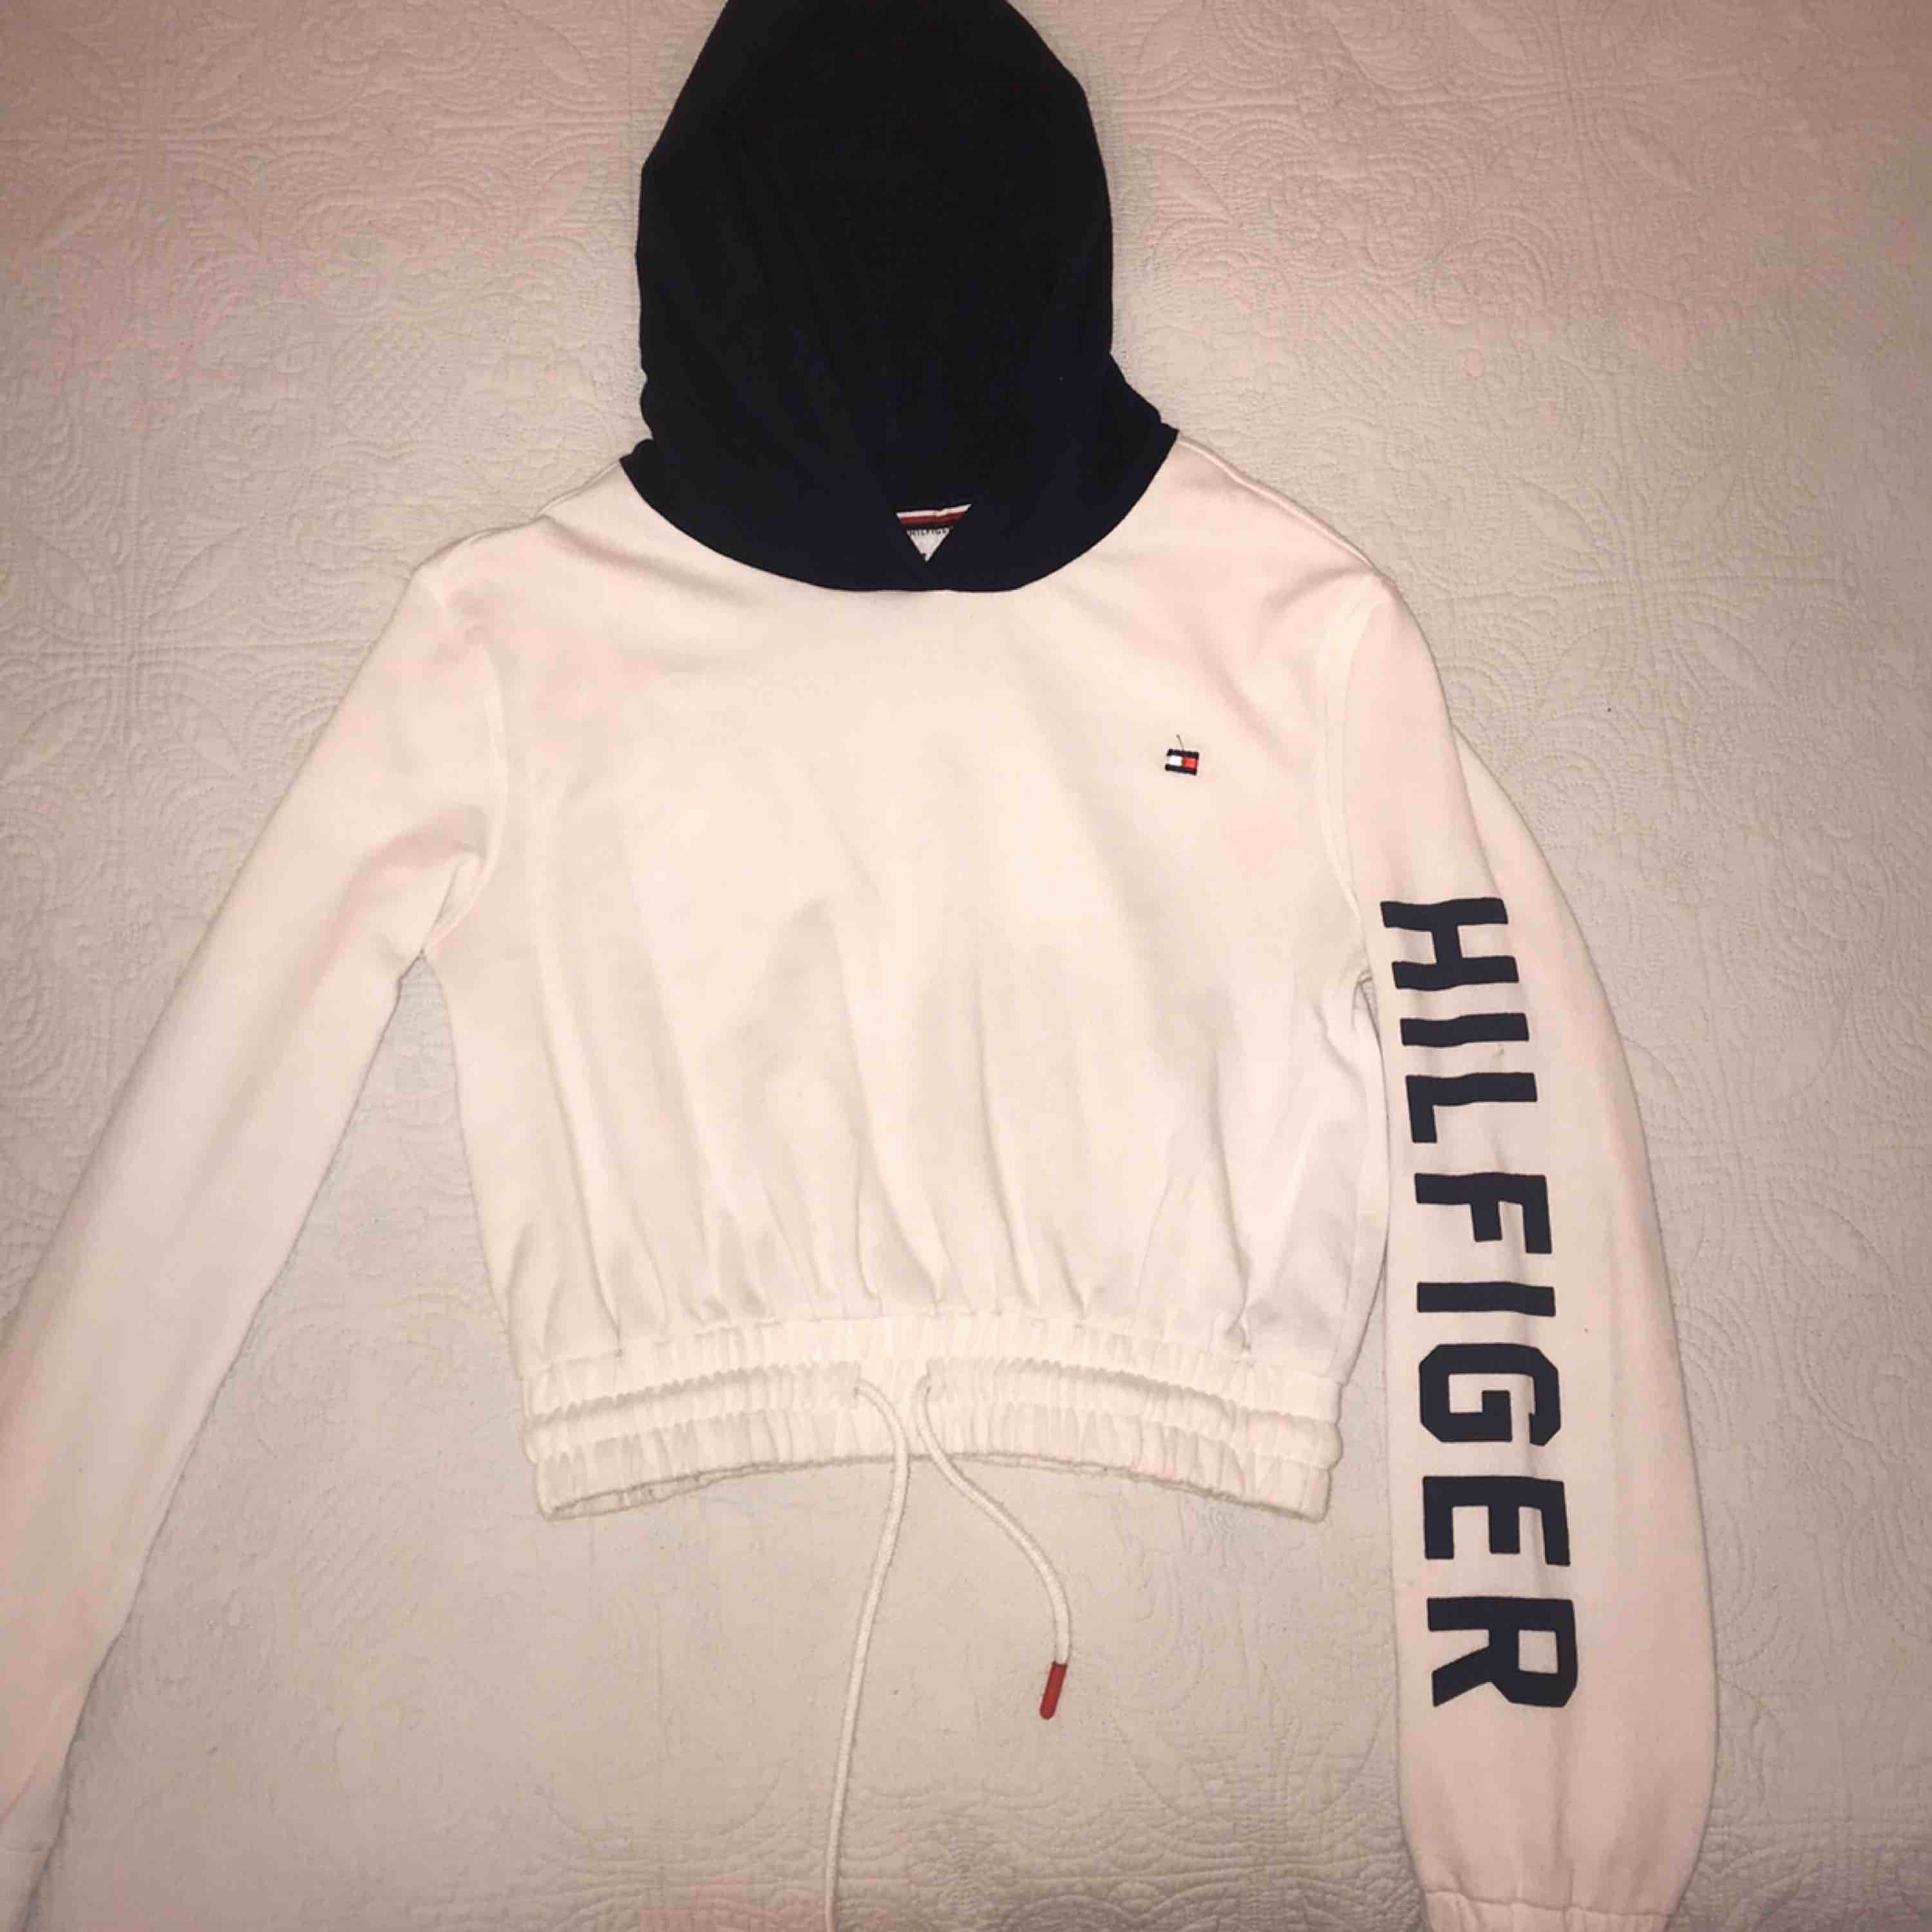 Cropped Tommy Hilfiger sweater in size XS but also fits S. Only worn a few times. Meet up in Stockholm or pay for shipping🤩 (I take swish). Tröjor & Koftor.